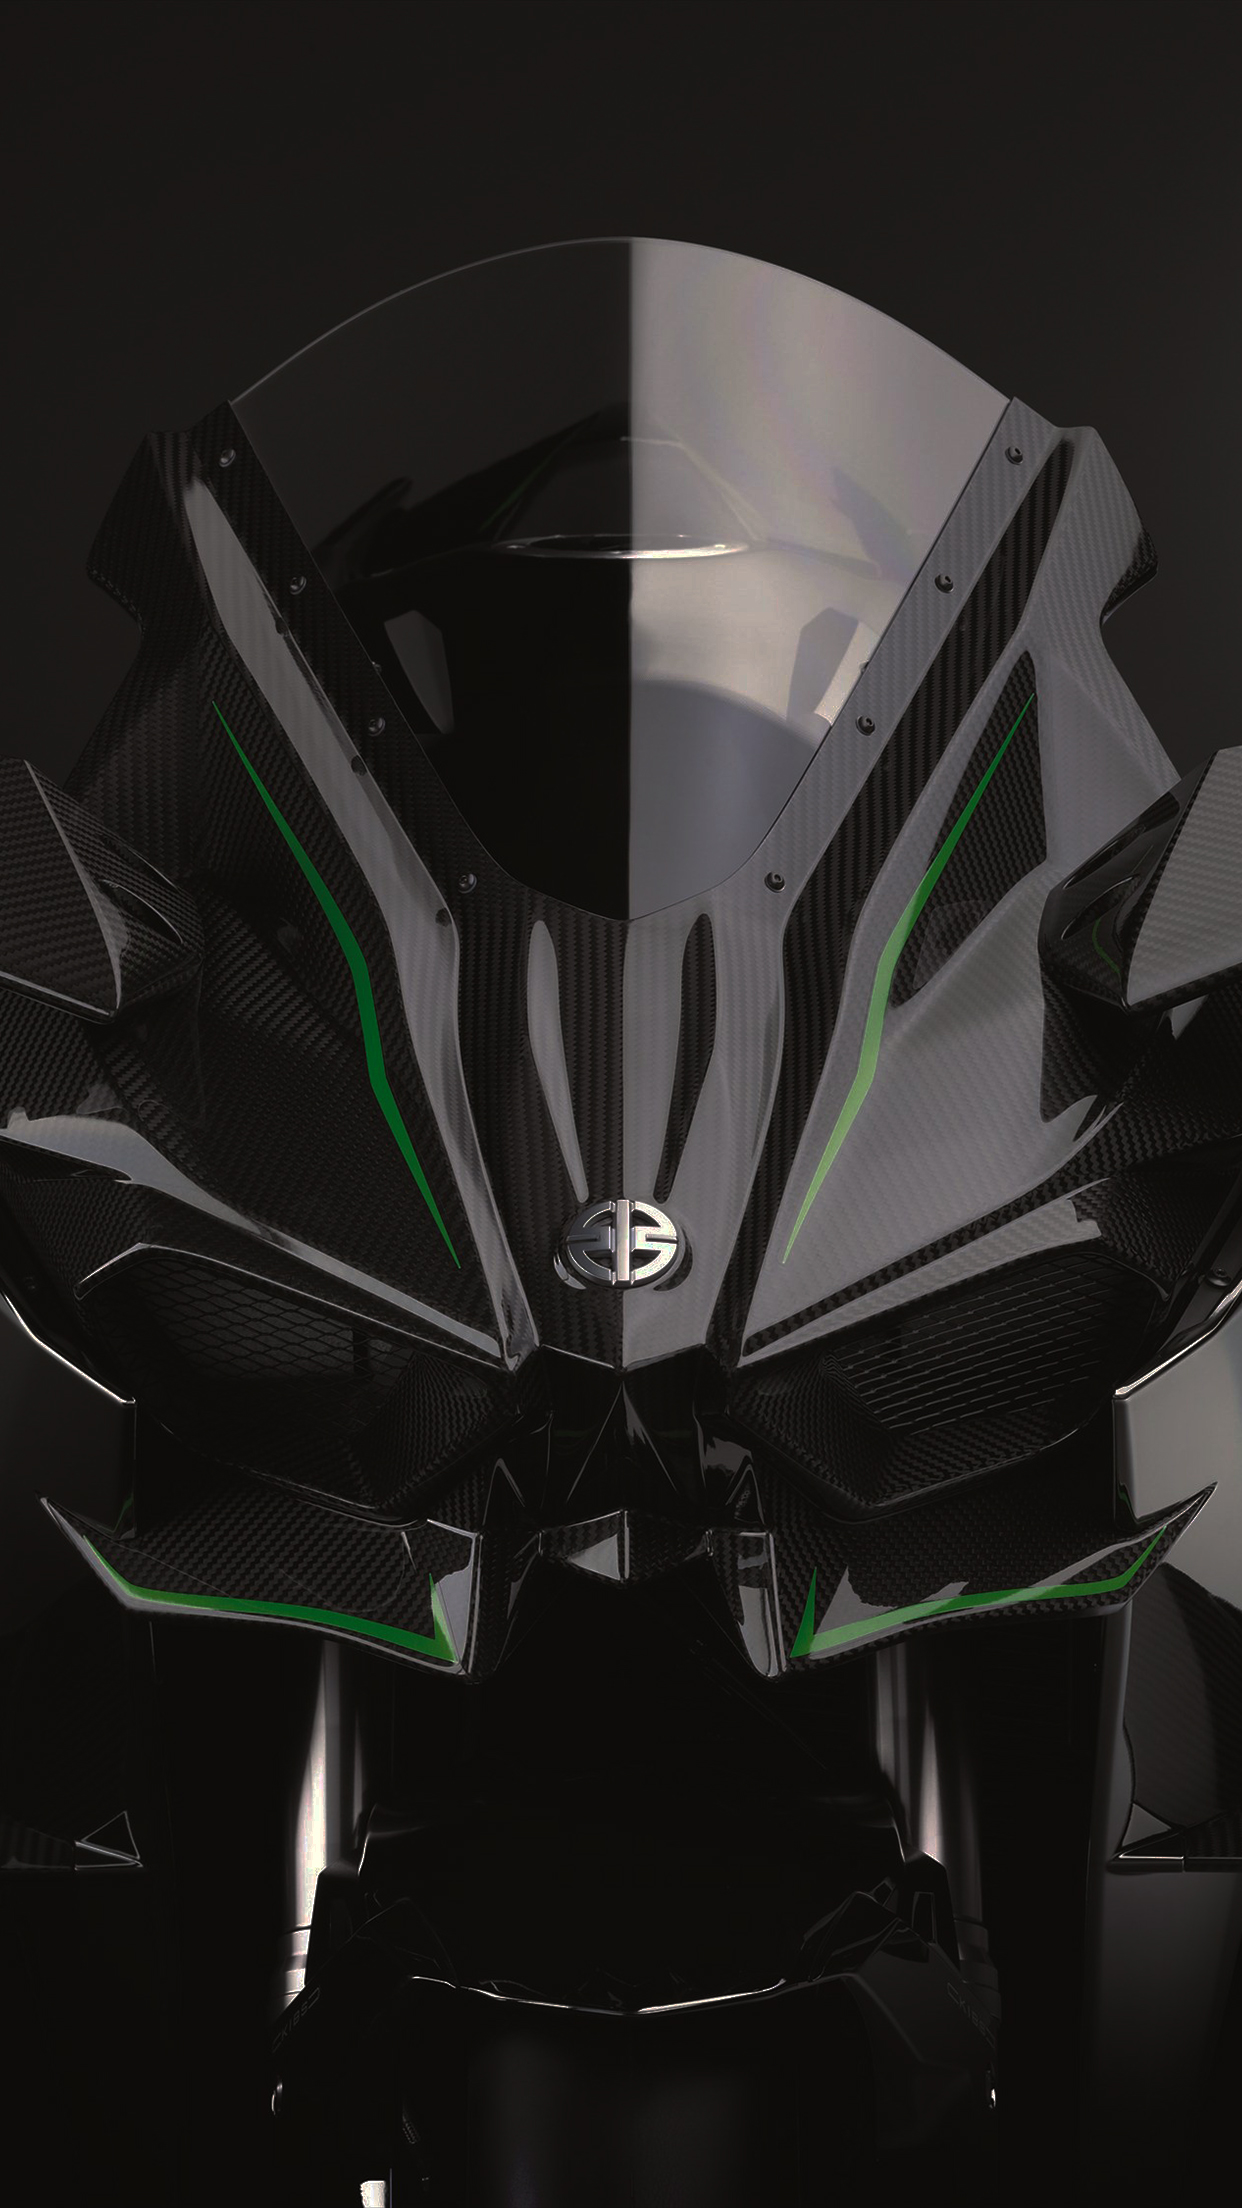 kawasaki ninja wallpaper iphone 6